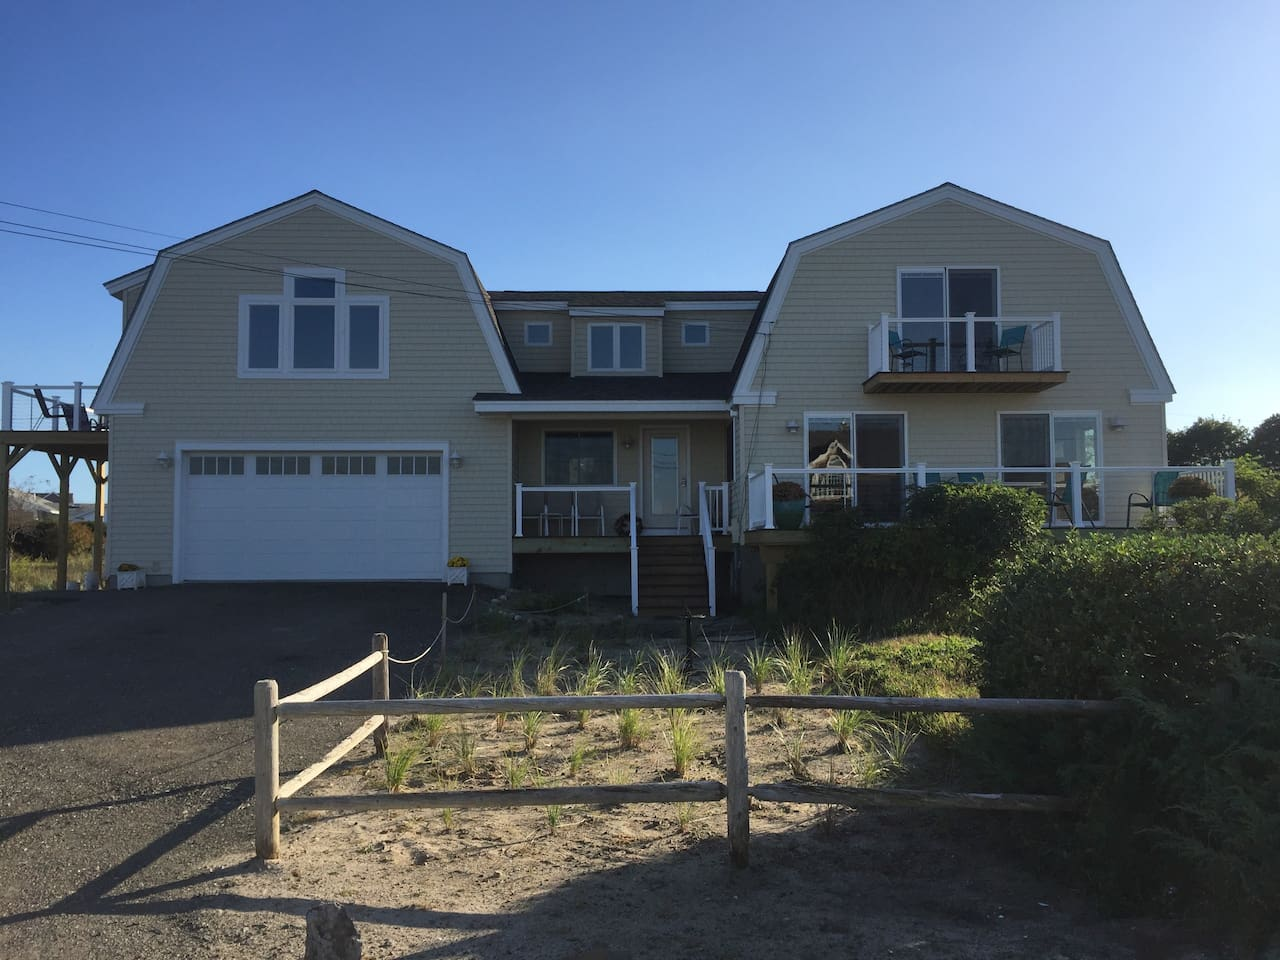 Newly renovated I harbor view  3 bedroom 2 1/2 bath home, walk to beaches, lobster pound and restaurants.